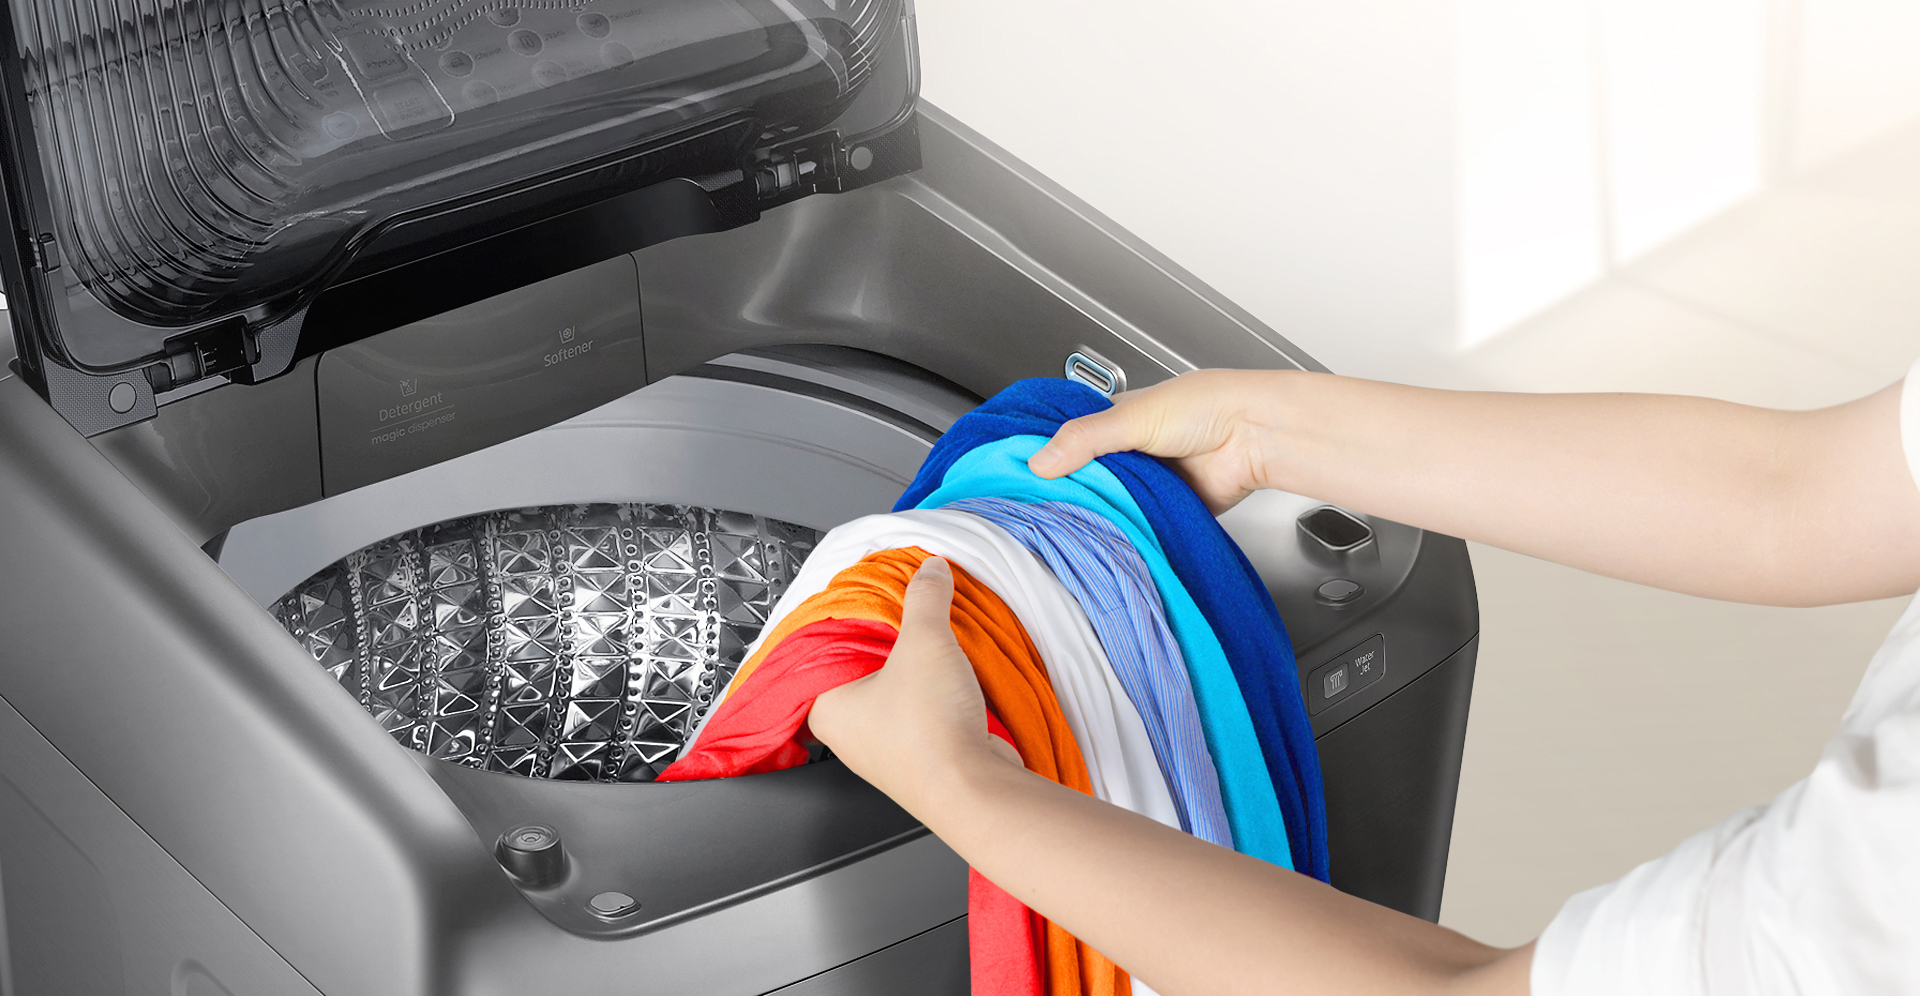 home-appliances-washing-machines-top-loa